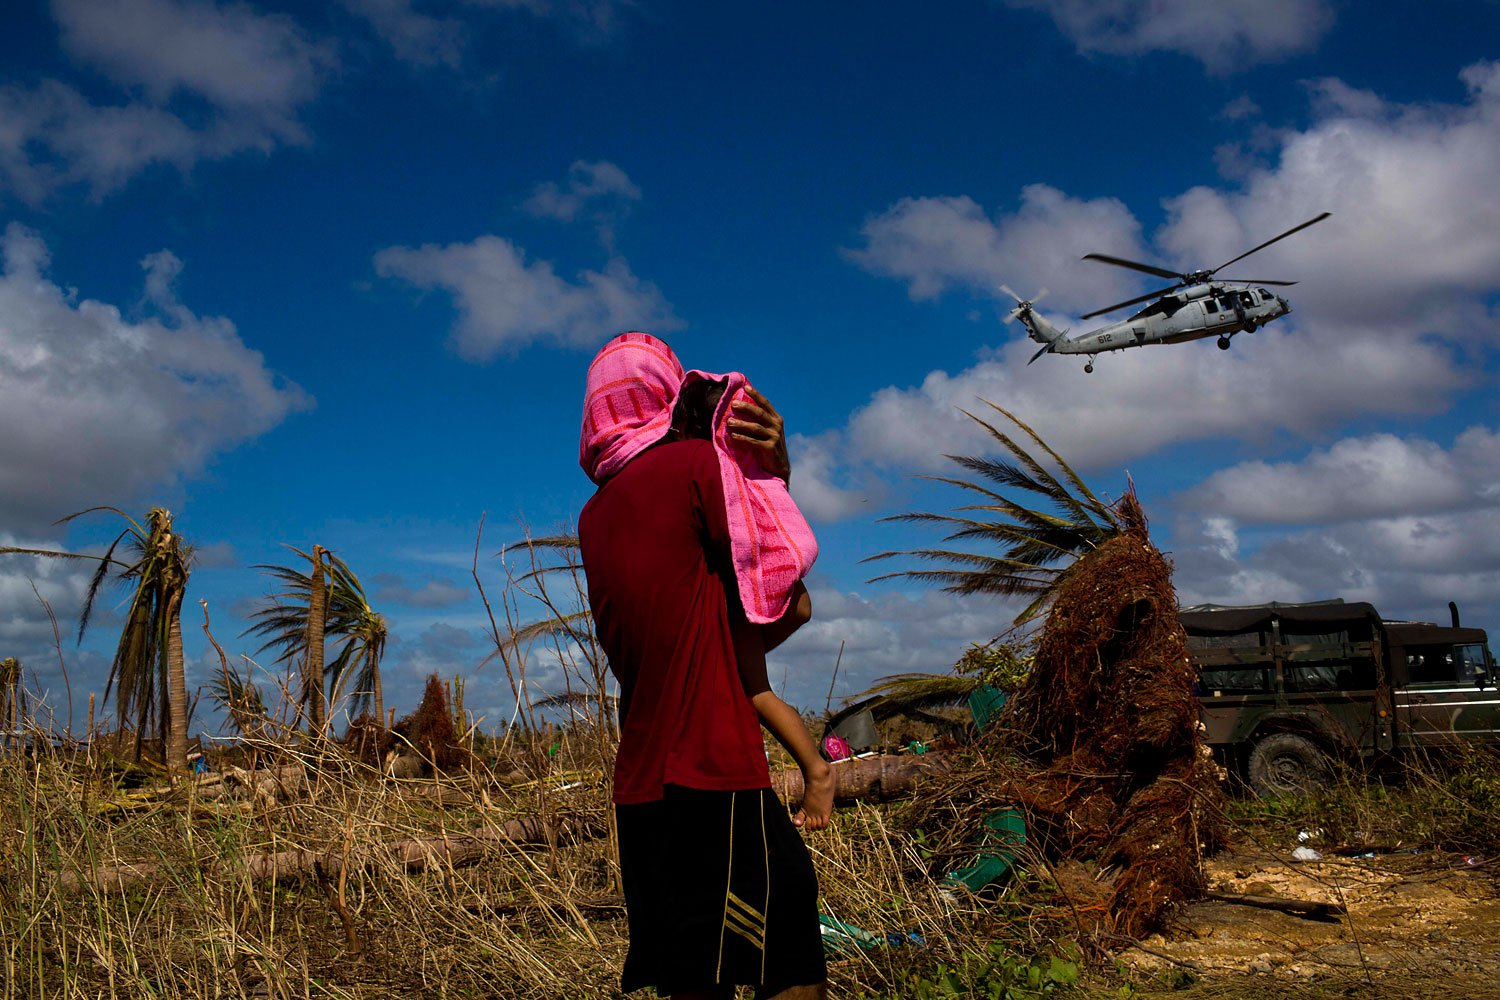 A Typhoon Haiyan survivor carries a child wrapped in a towel as he watches a helicopter landing to bring aid to the destroyed town of Guiuan, Samar Island, Philippines, November 15, 2013.